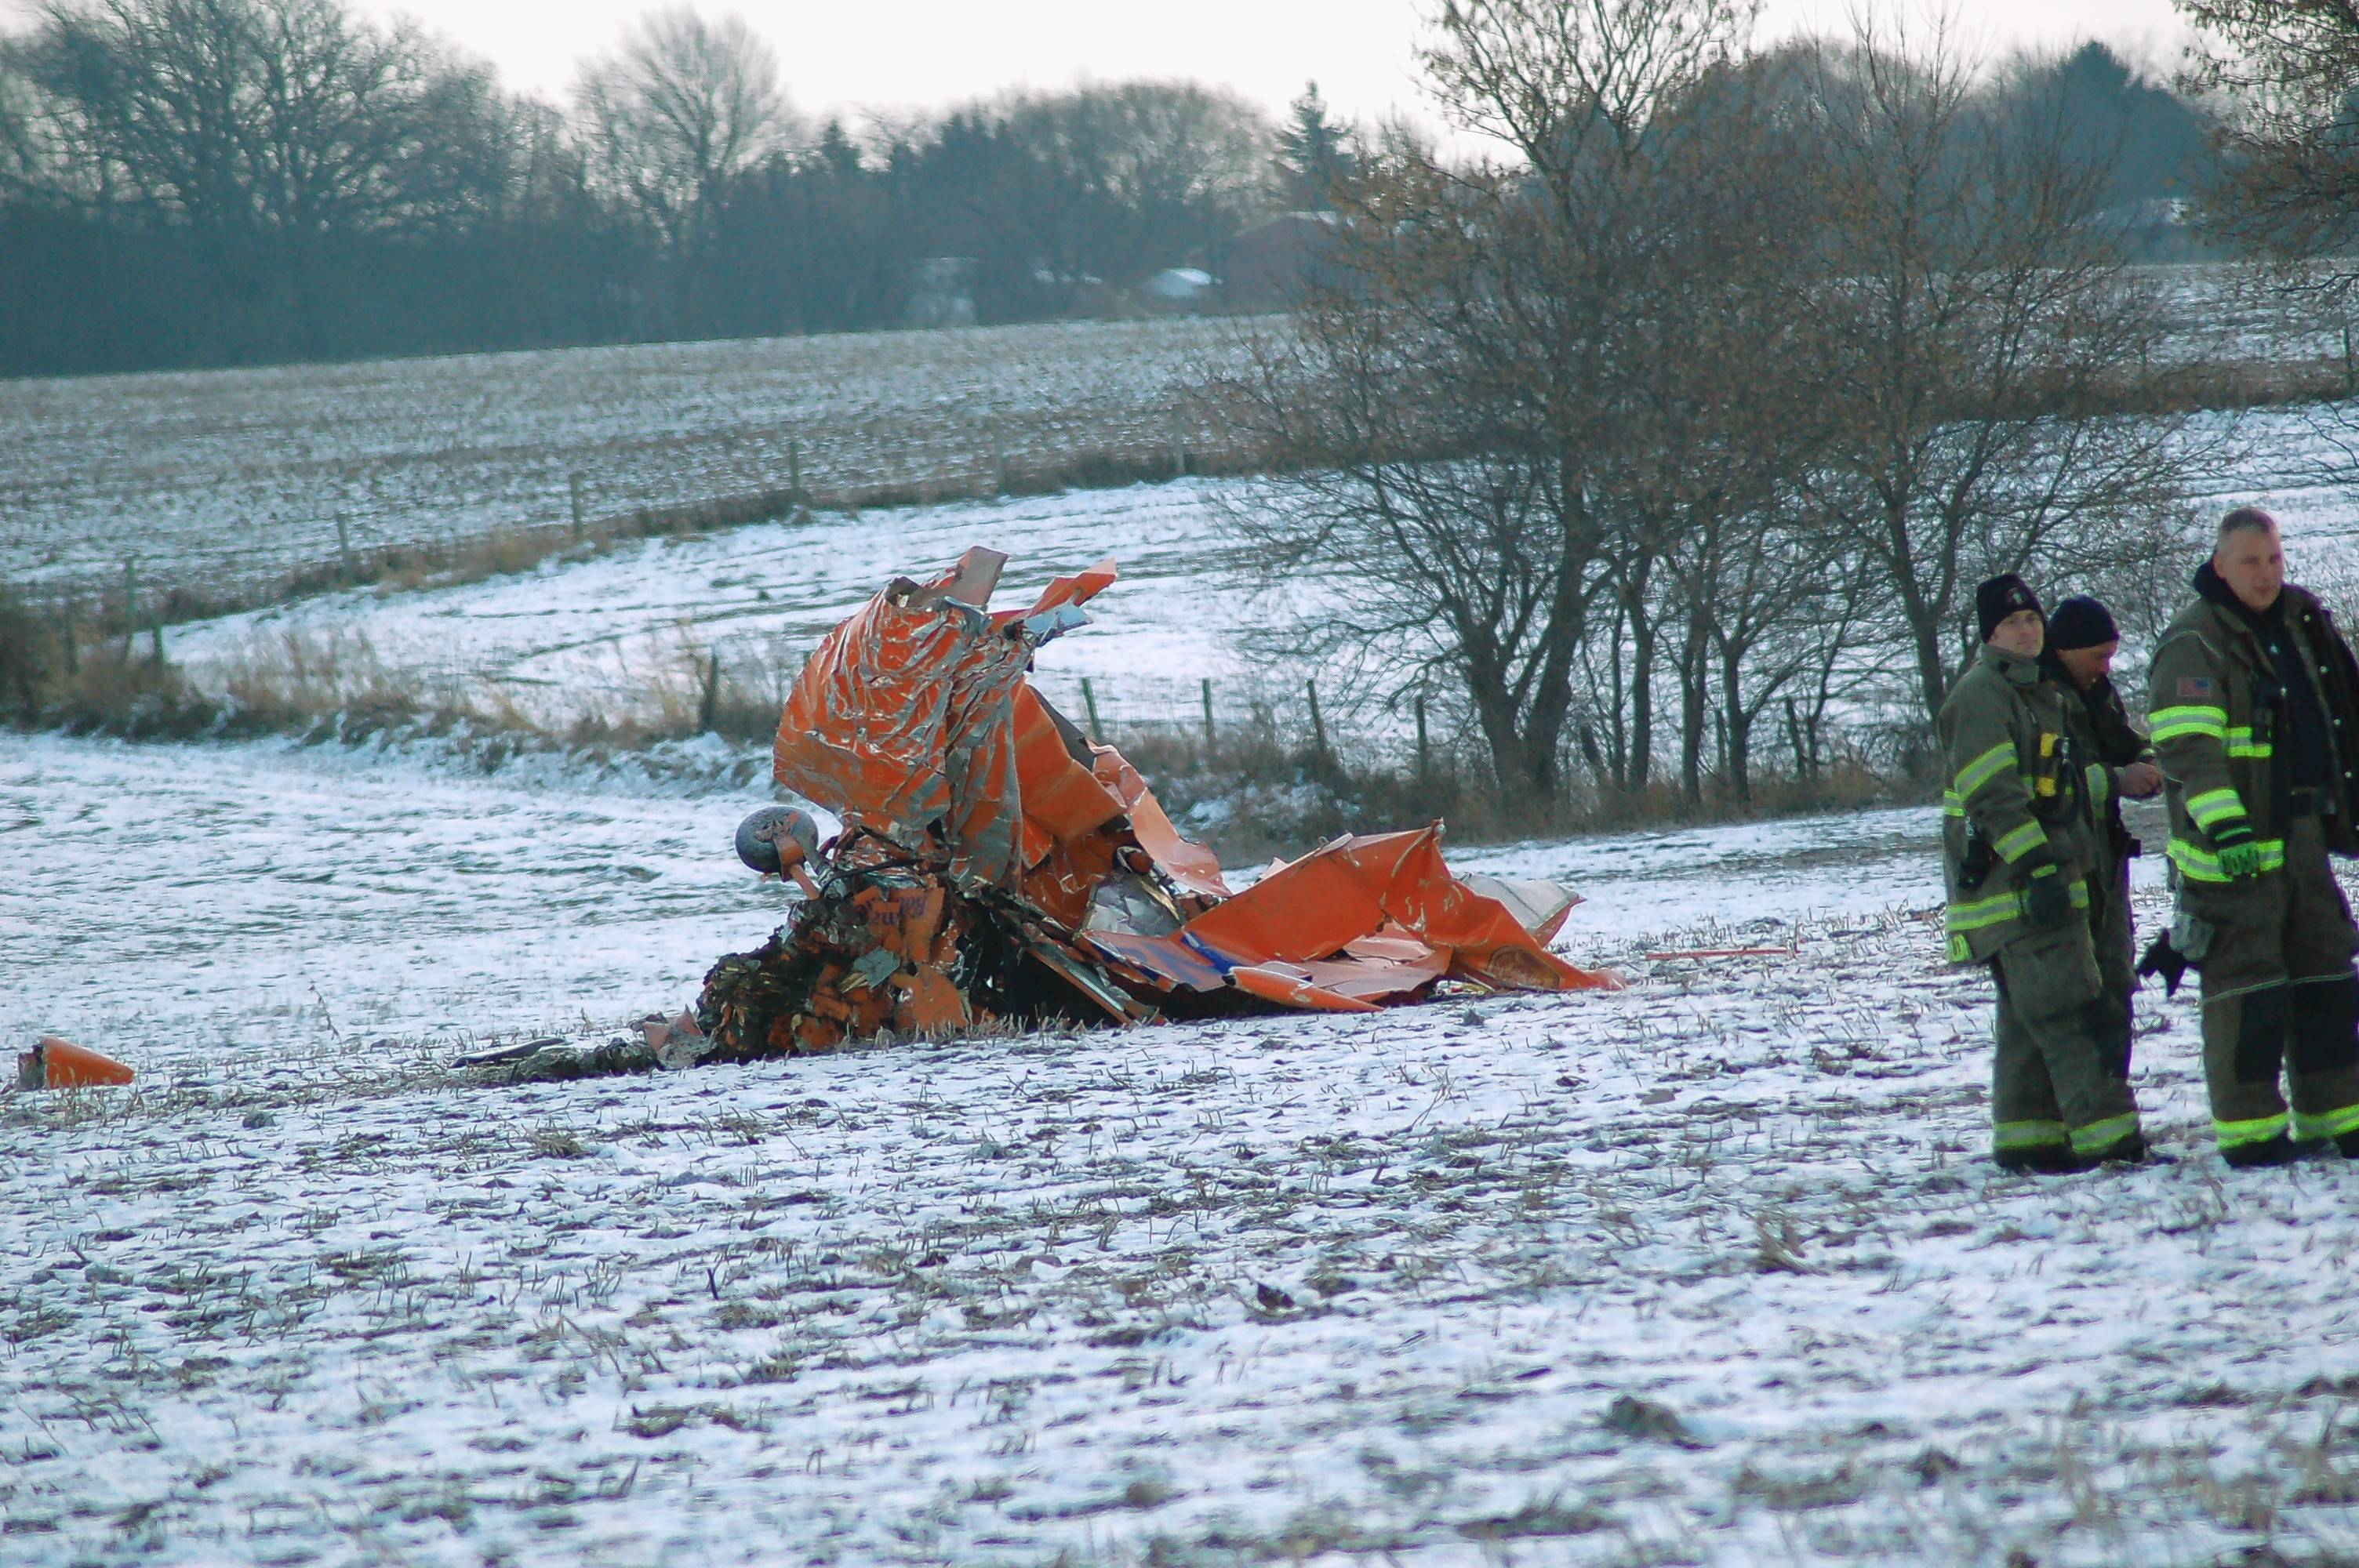 Federal authorities continue to investigate what led to a small plane crashing Friday in a Marengo cornfield. Records show the plane belonged to longtime suburban atheist activist Rob Sherman, but investigators have not released the identity of the man killed in the crash.